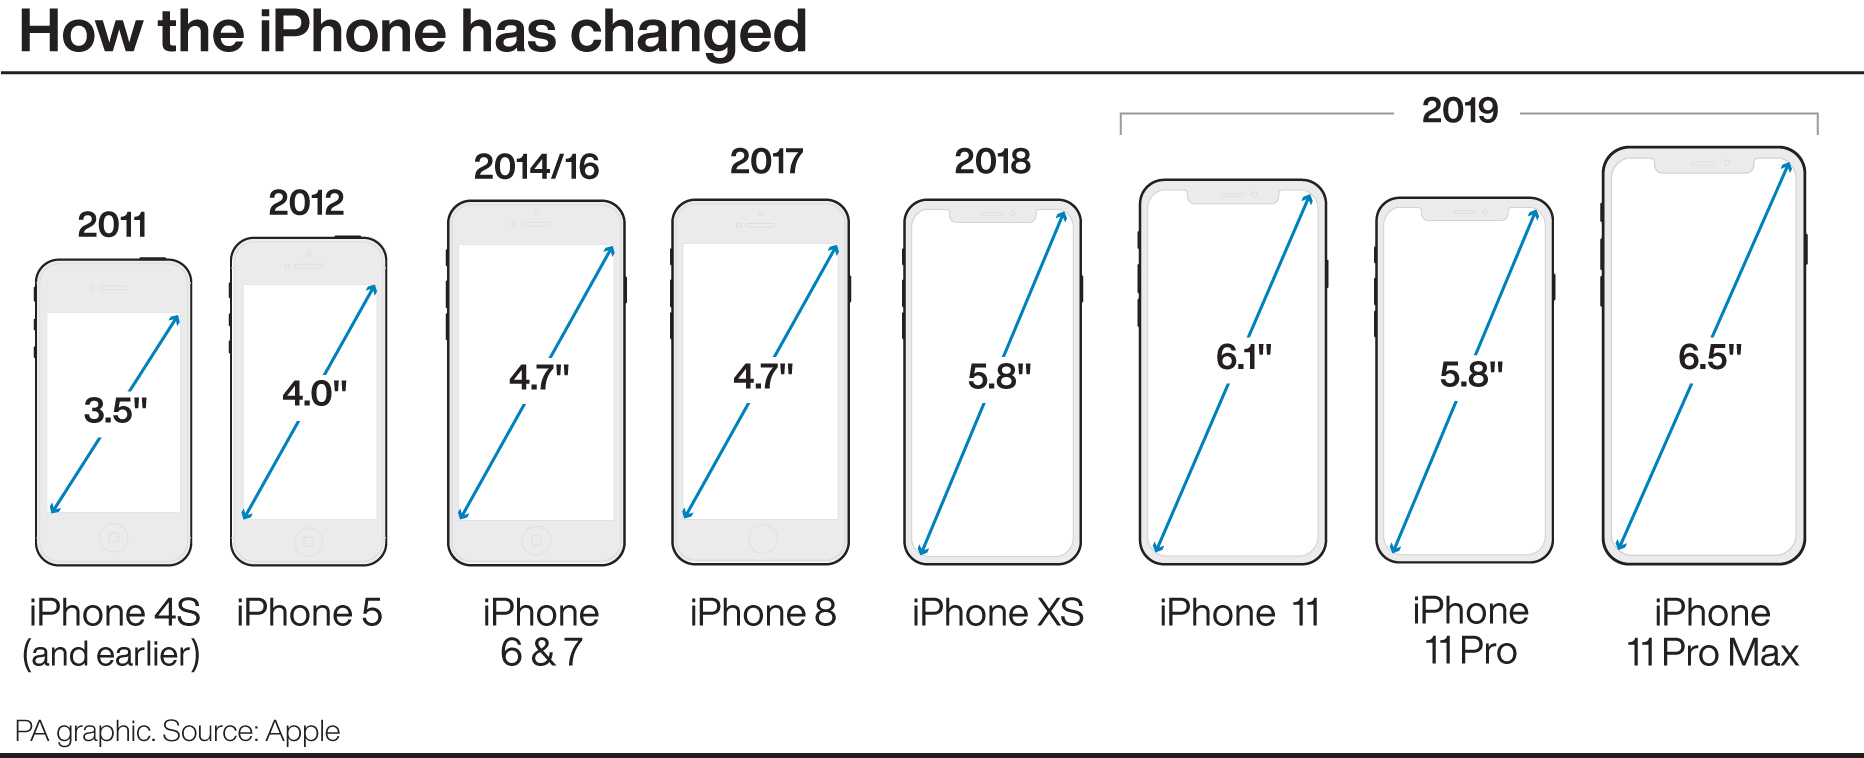 How the iPhone has changed